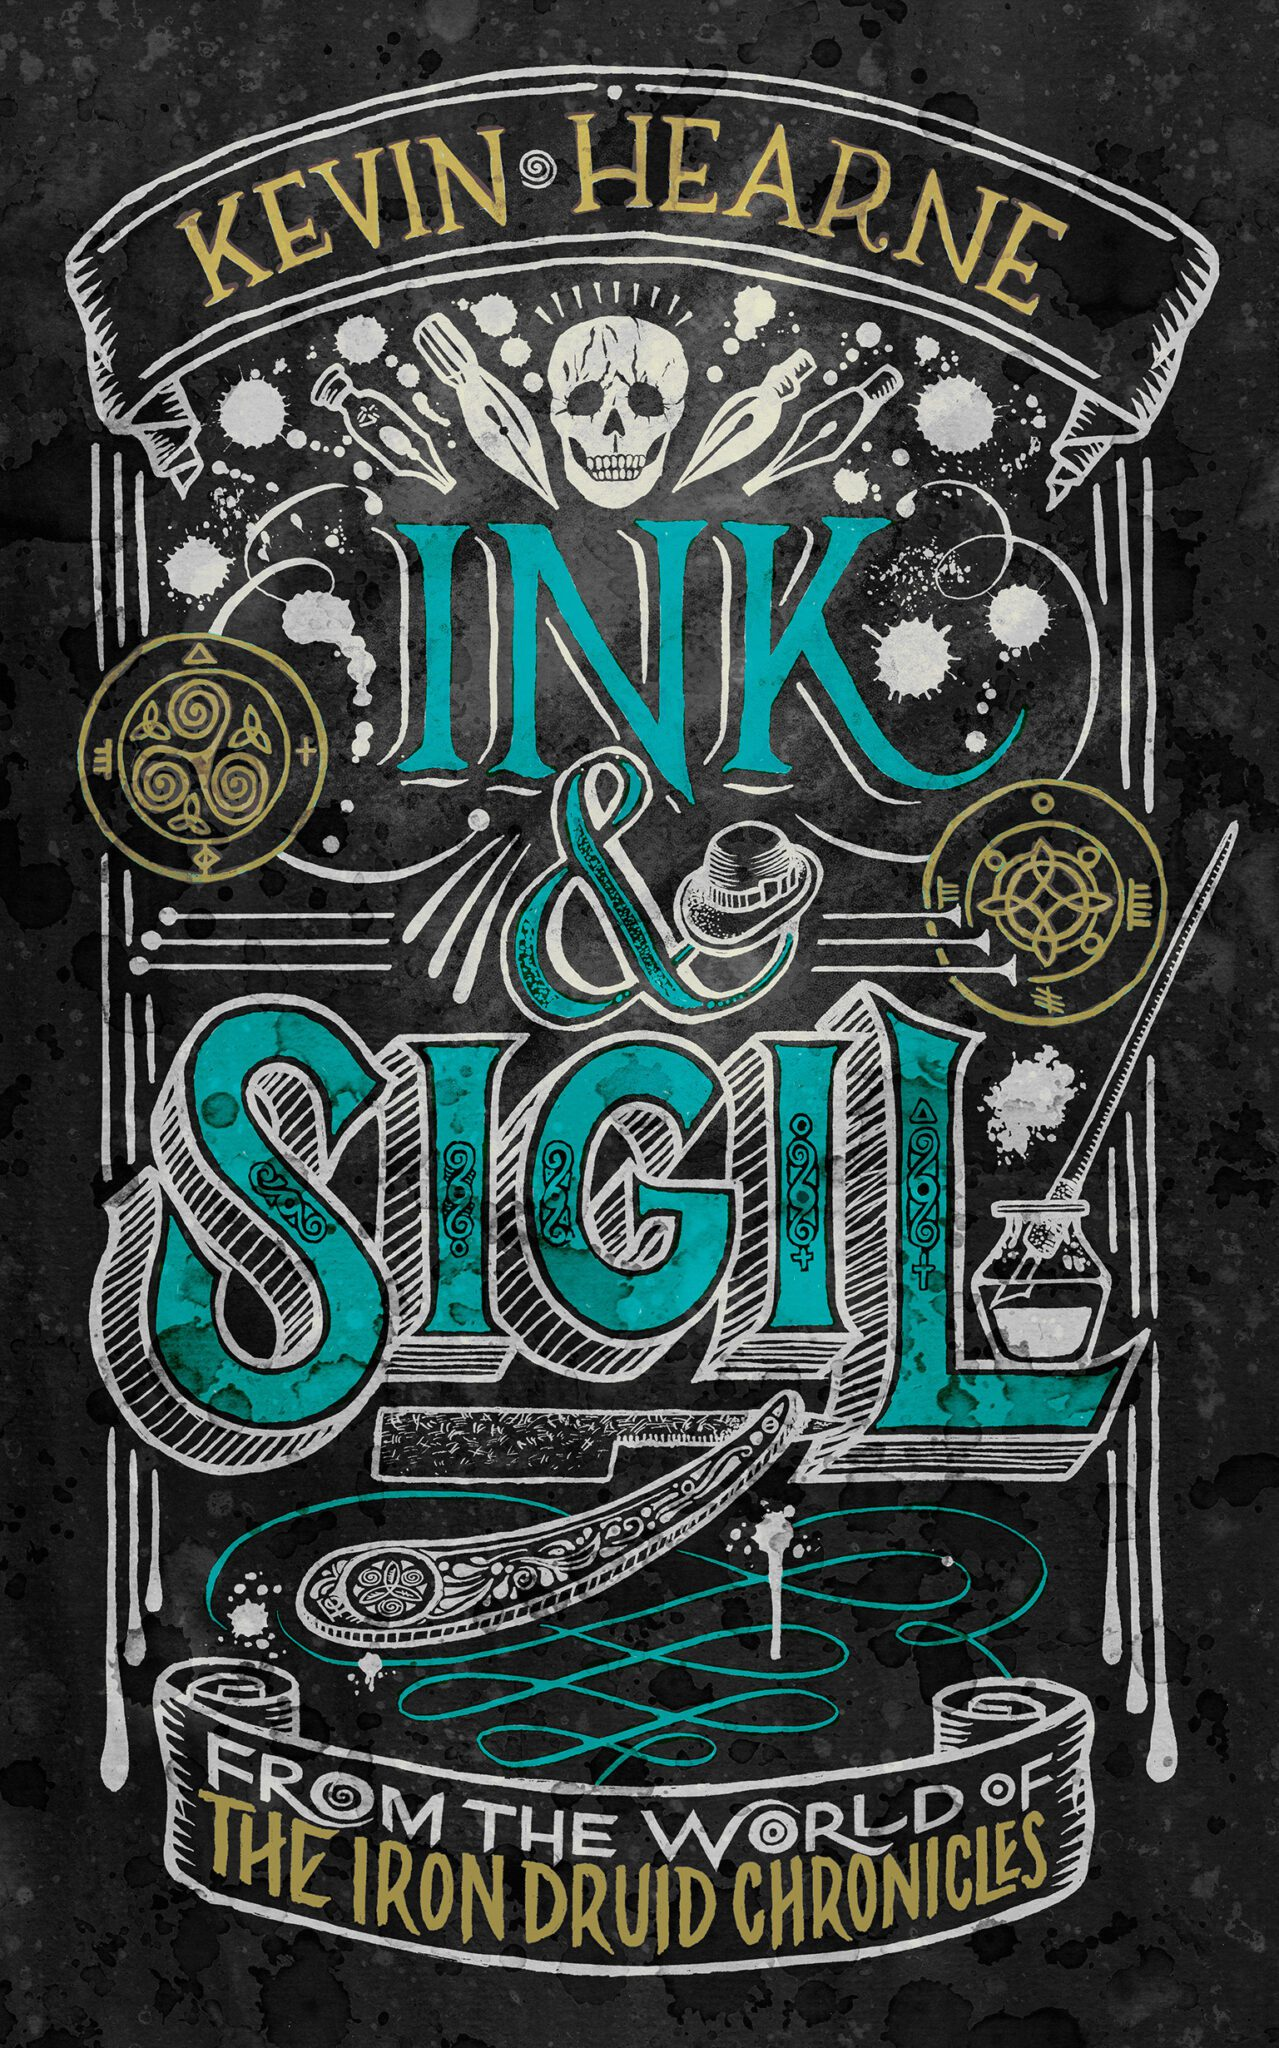 Kevin Hearne: Five Things I Learned Writing Ink & Sigil